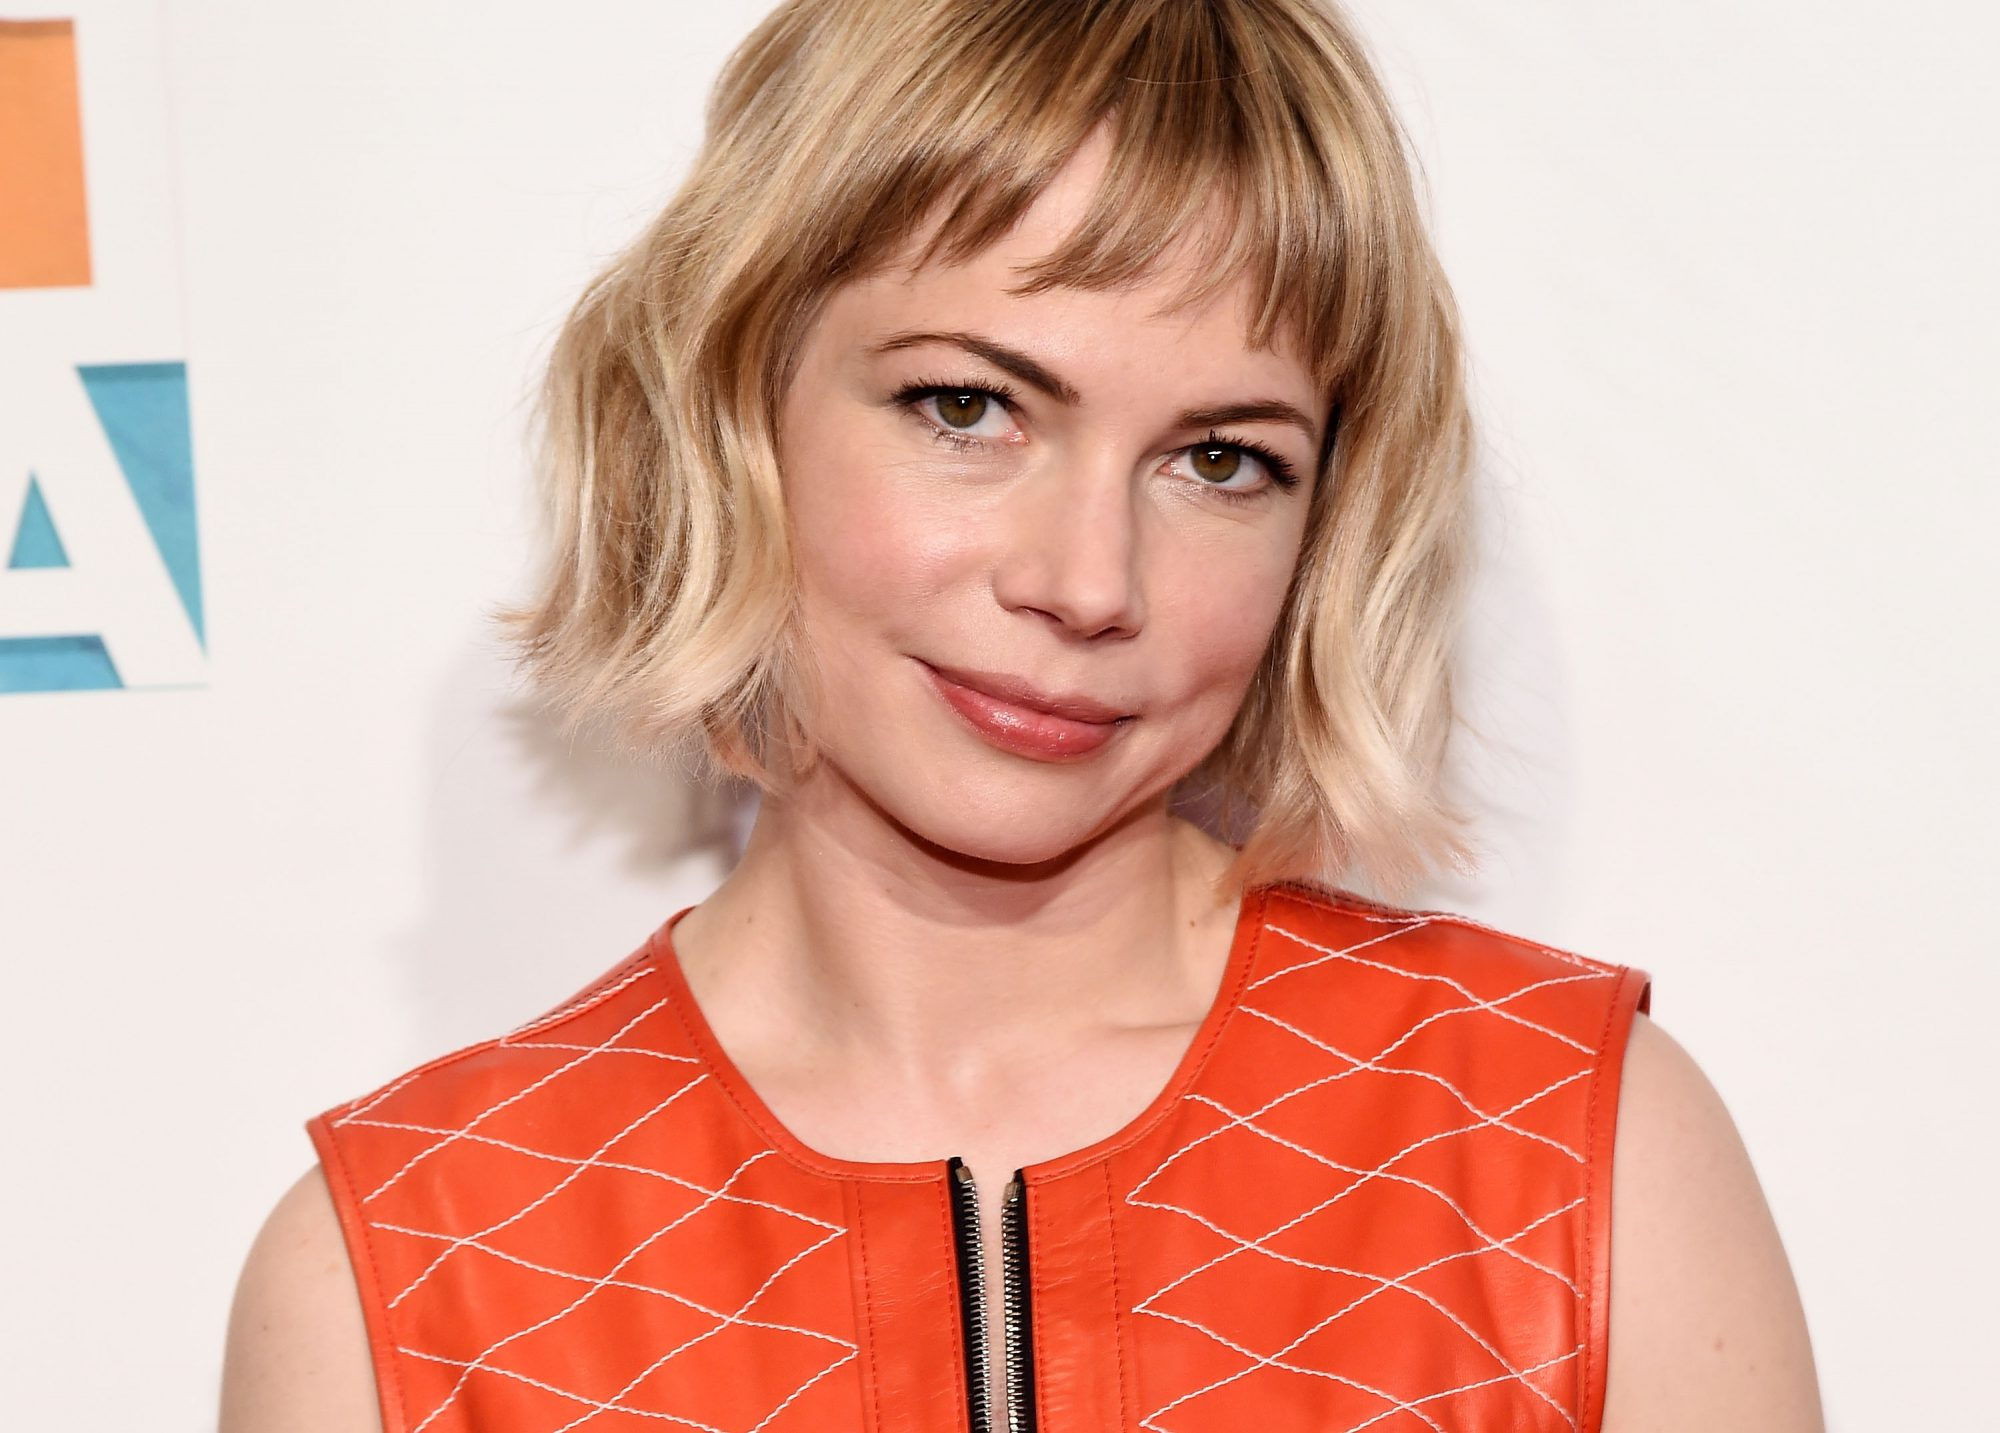 Short Shag Haircuts That'll Finally Convince You To Make The With Regard To Short Warm Blonde Shag Haircuts (View 16 of 20)